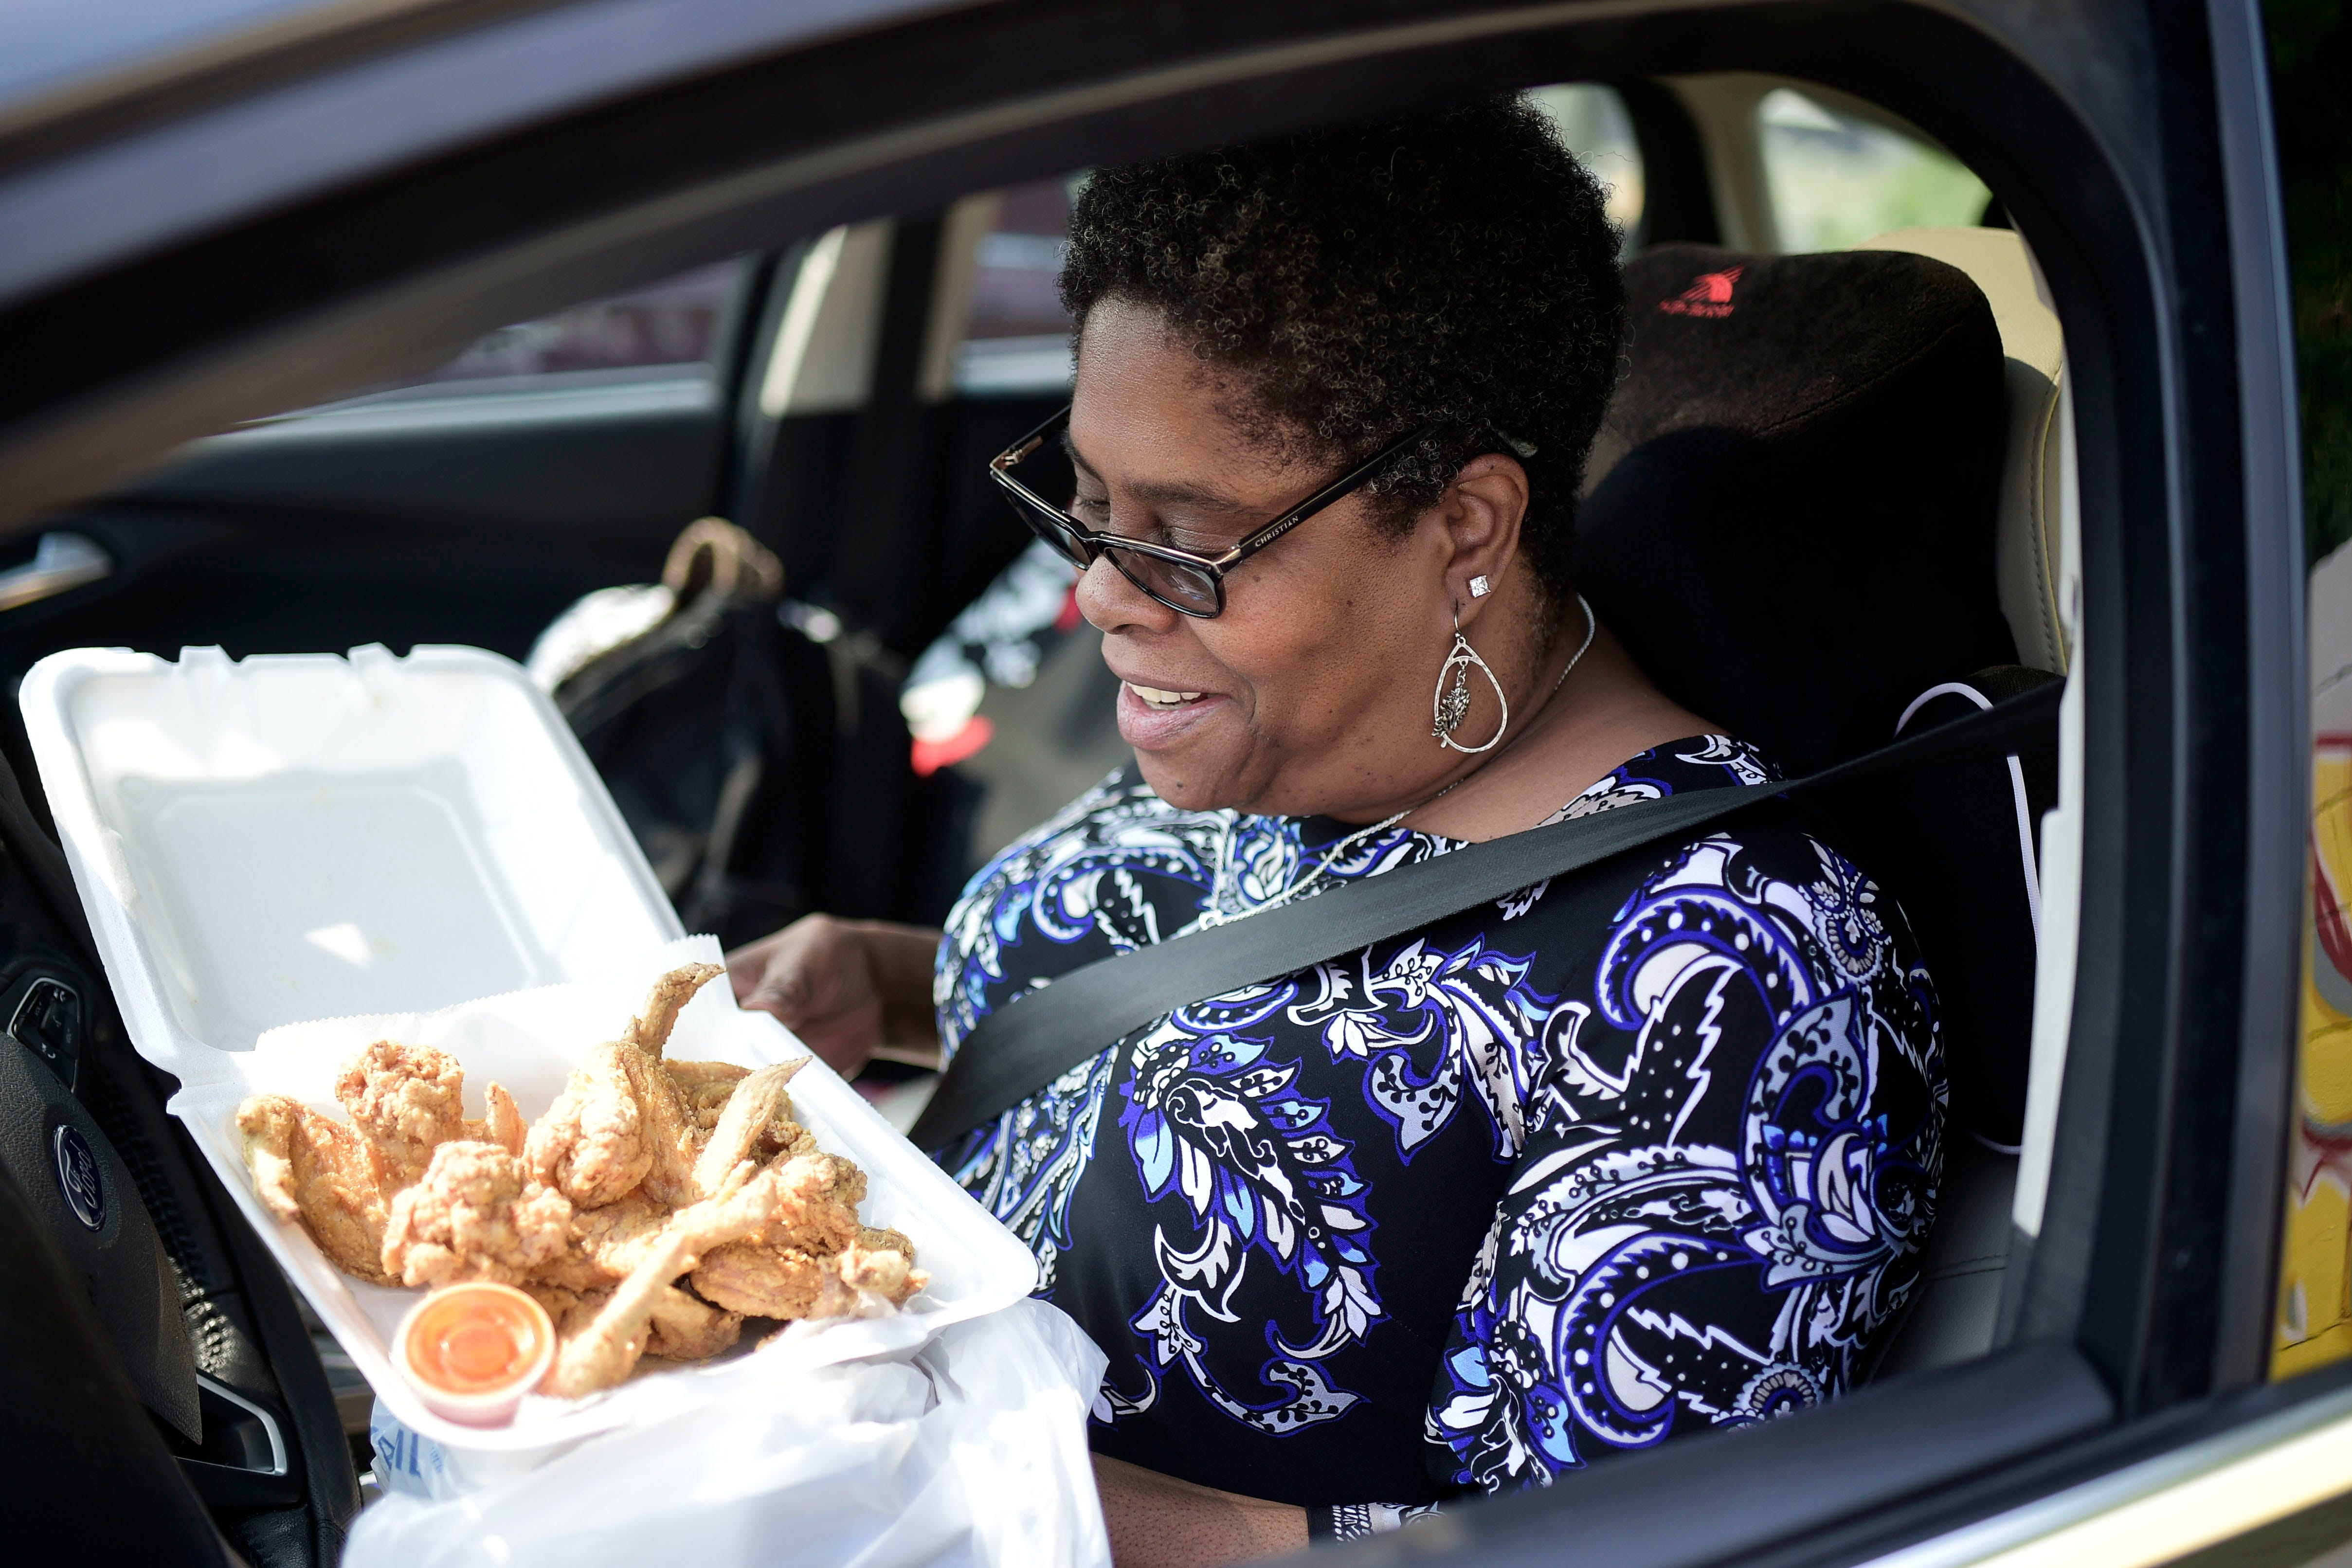 Pamela Harrison ordered 10 wings on this visit to Burger Boys restaurant. She typically orders 20 at a time. She sometimes skips breakfast to save room for the food, which she enjoys eating with hot sauce on the drive home.